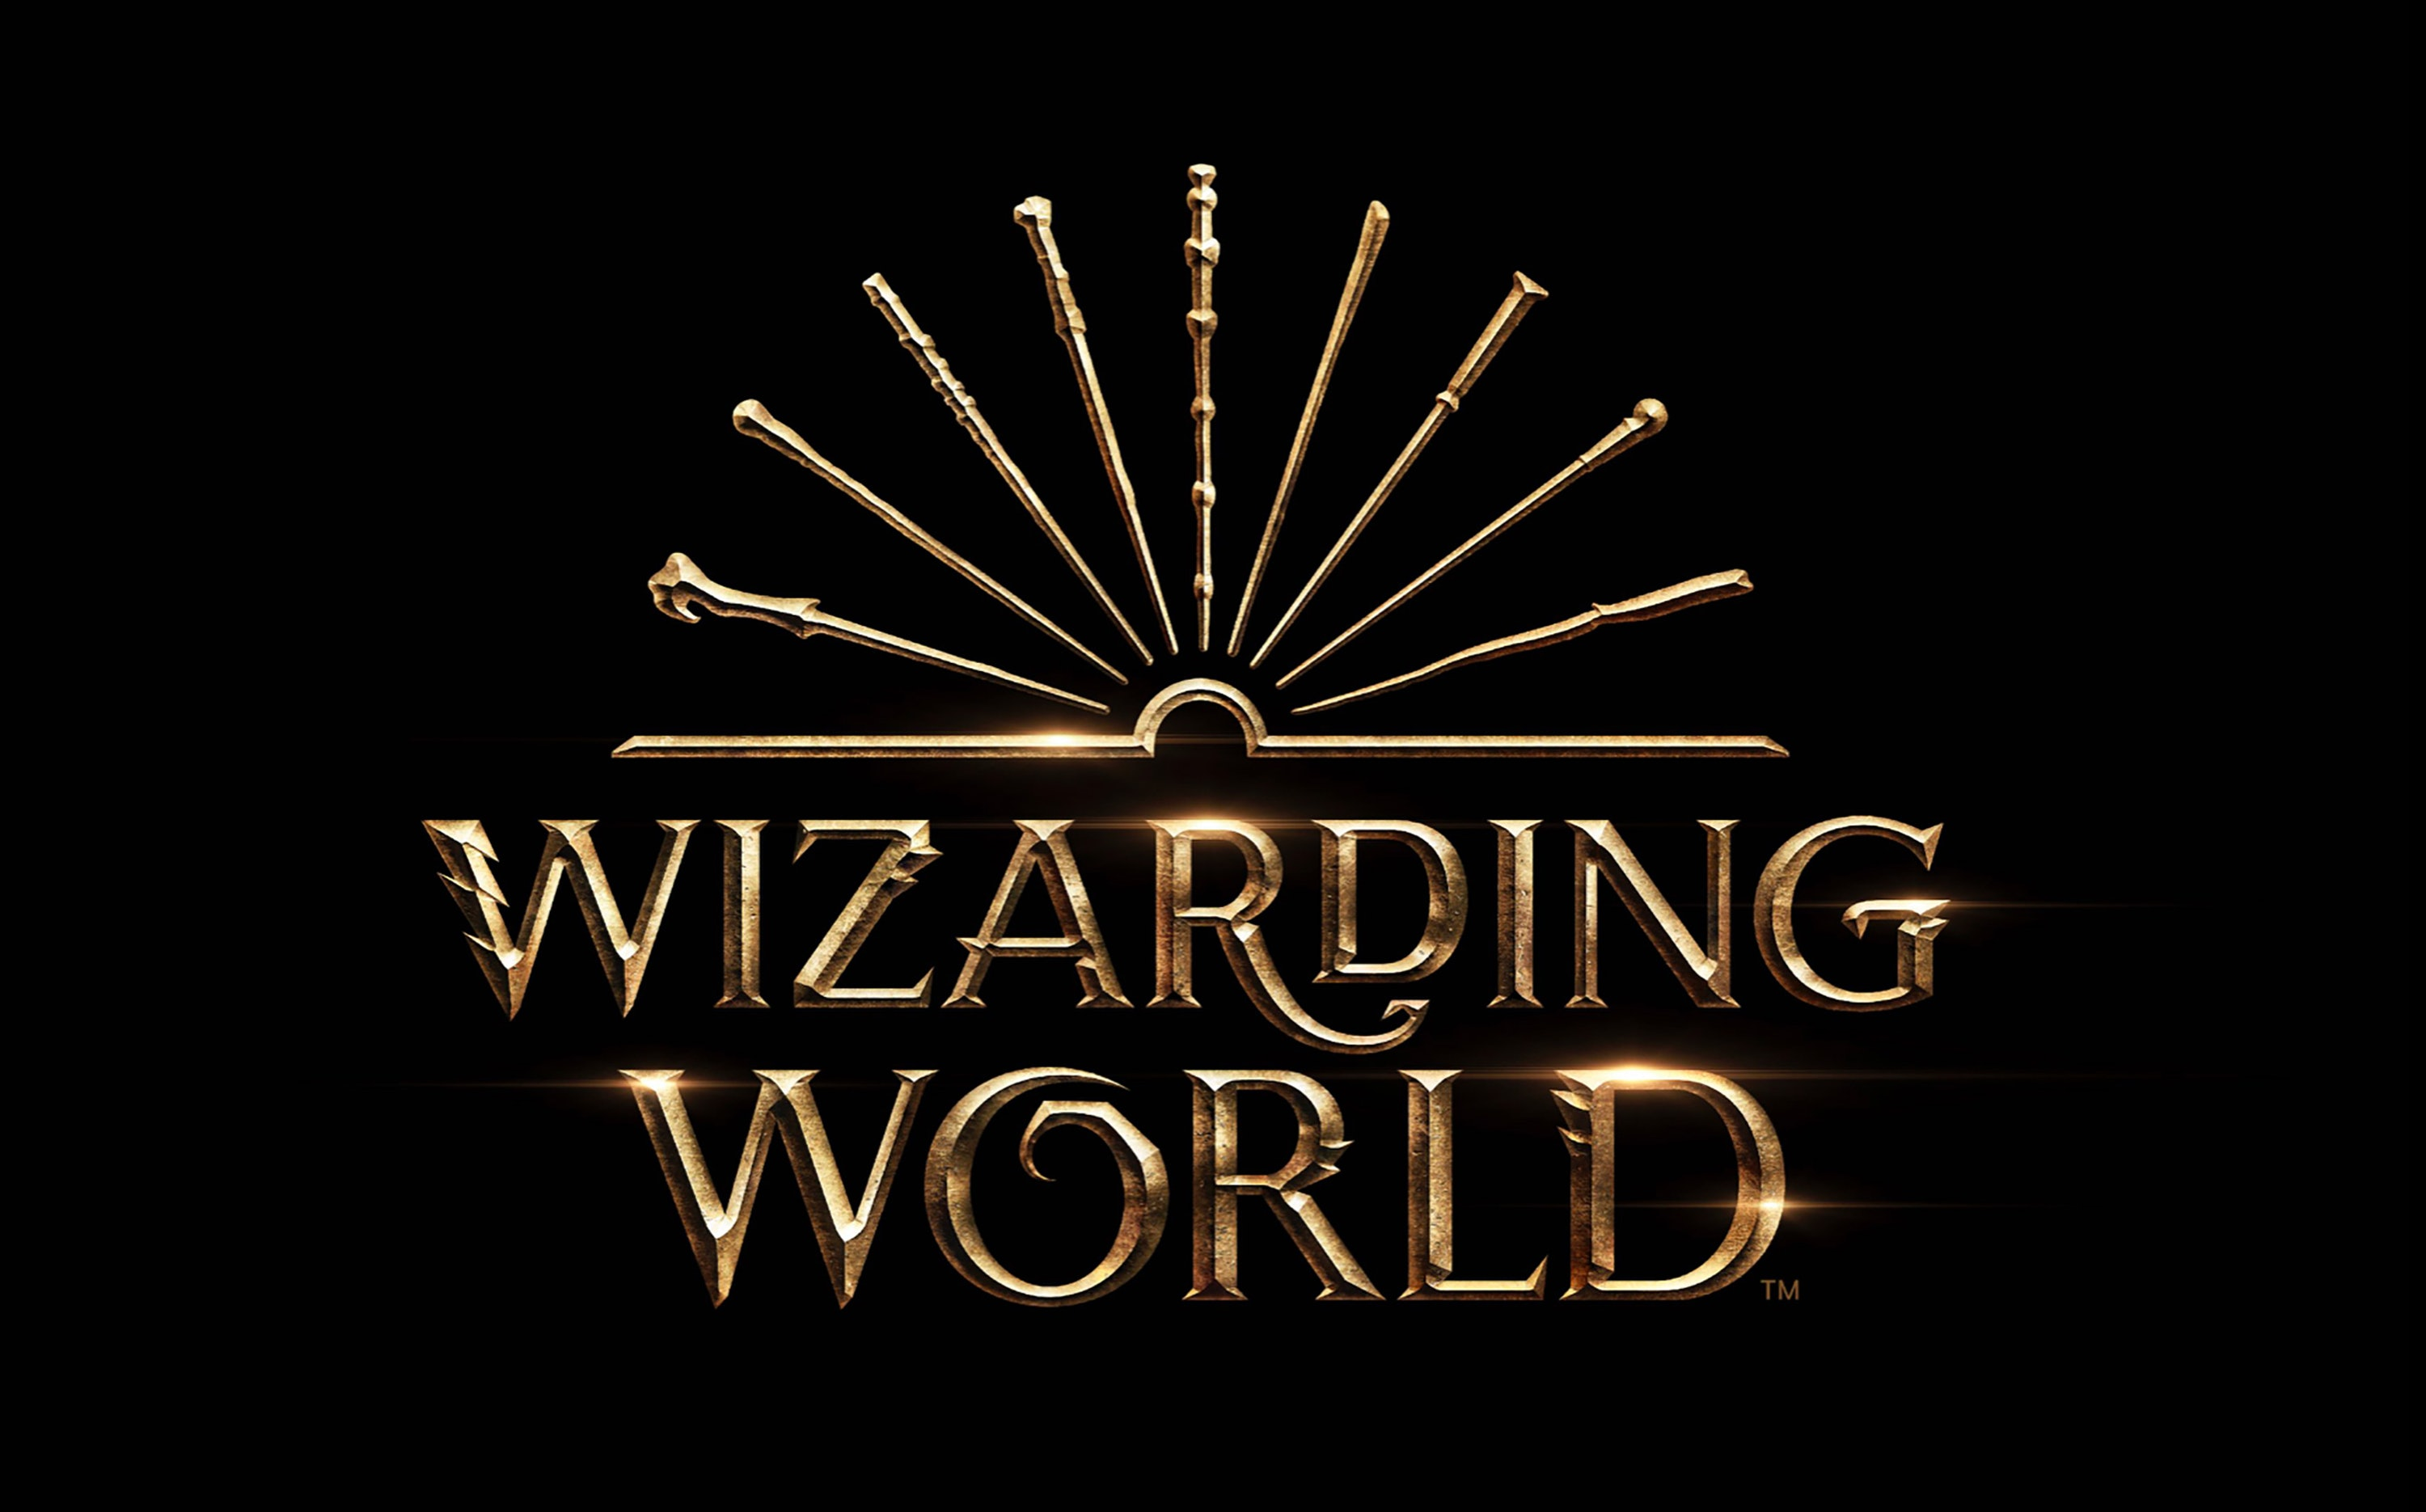 emo_wizardingworld_05